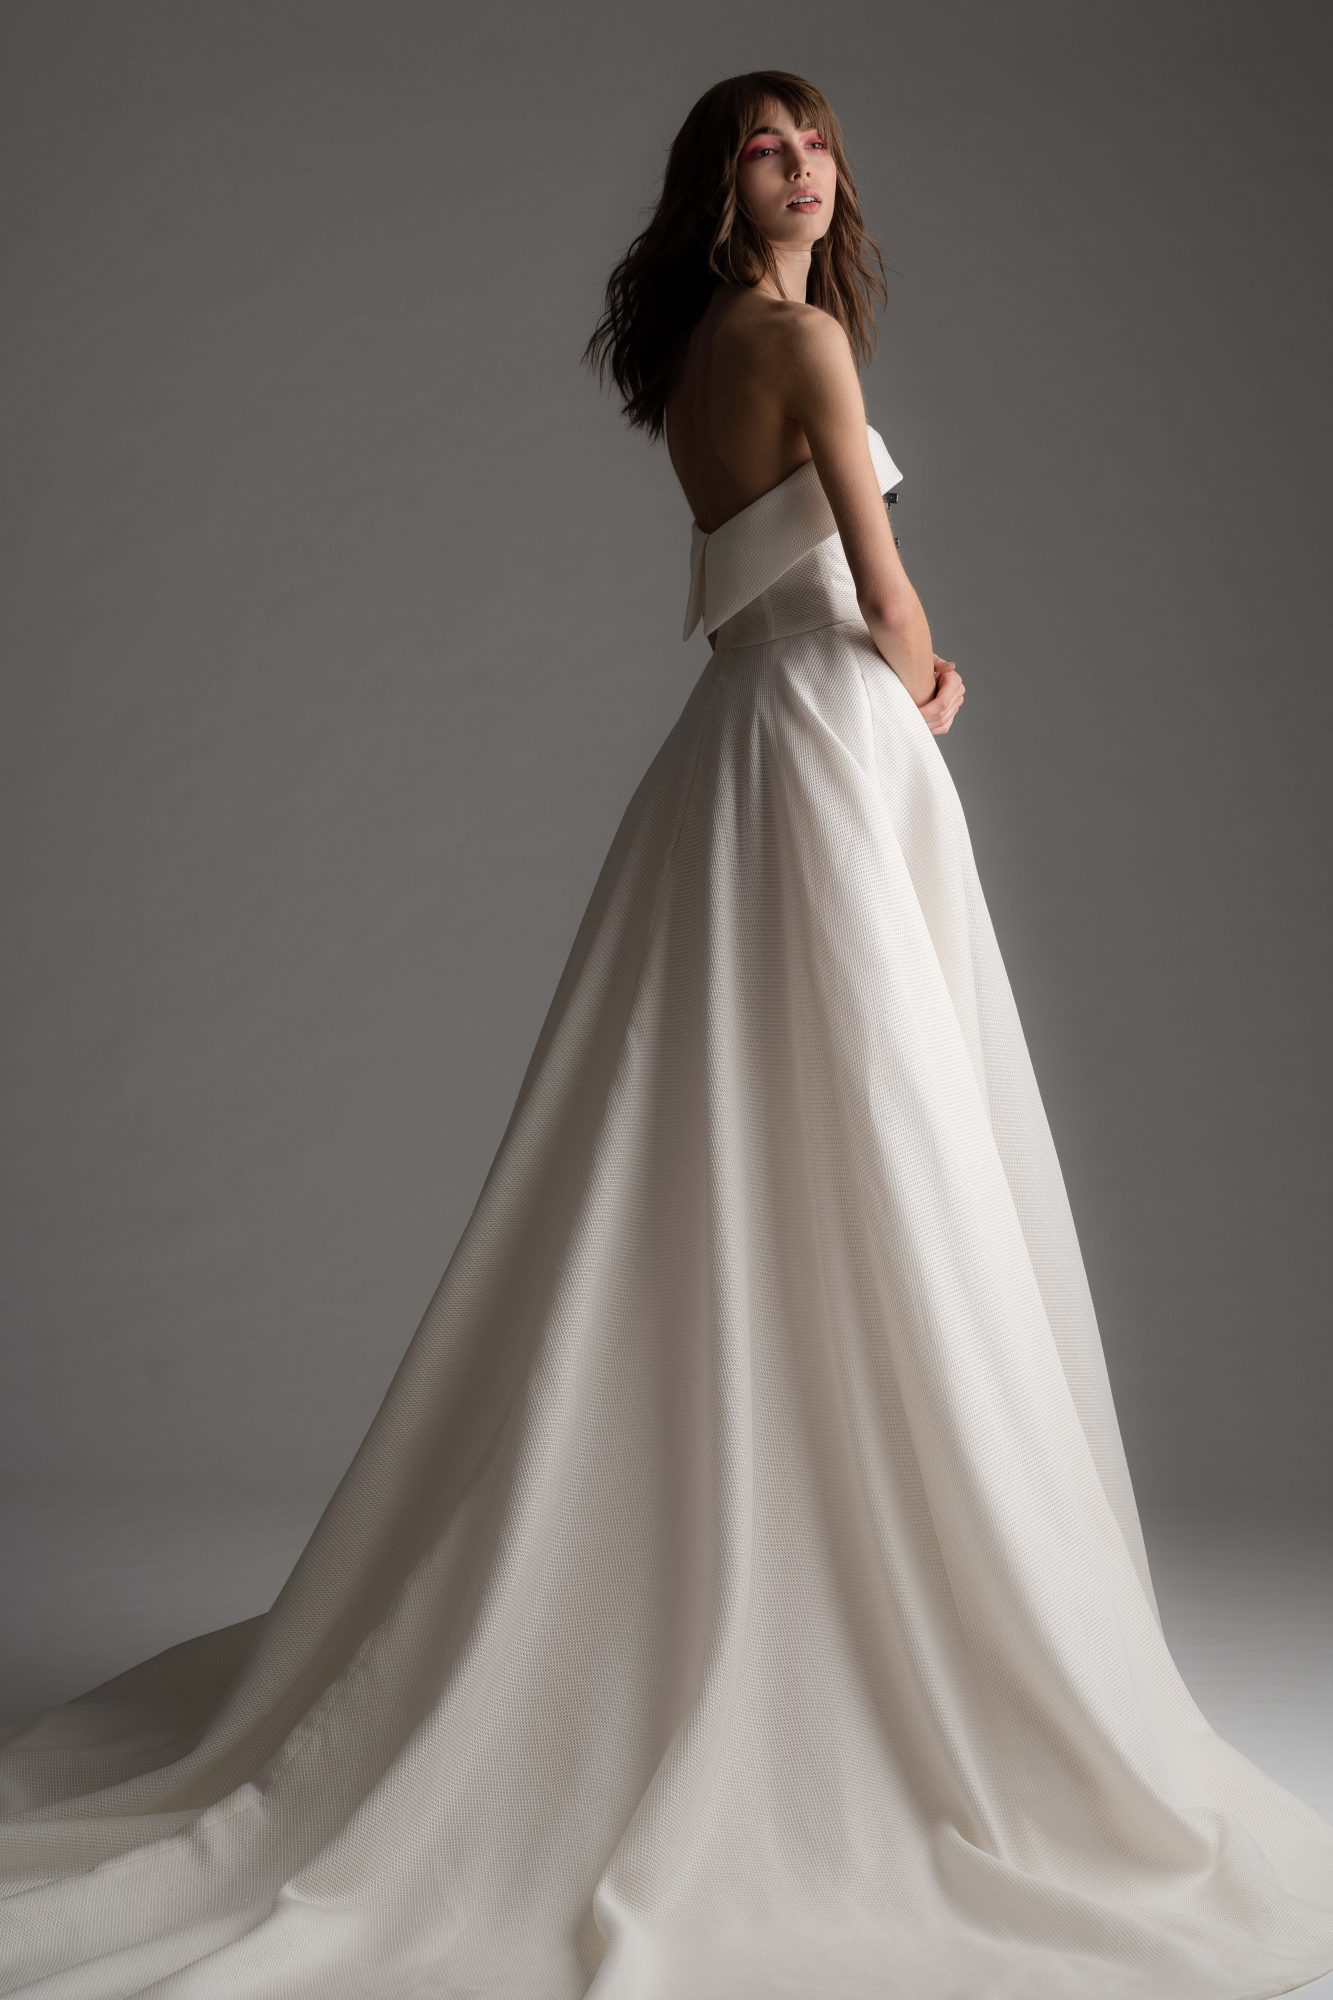 rivini by rita fall 2019 strapless a-line wedding dress